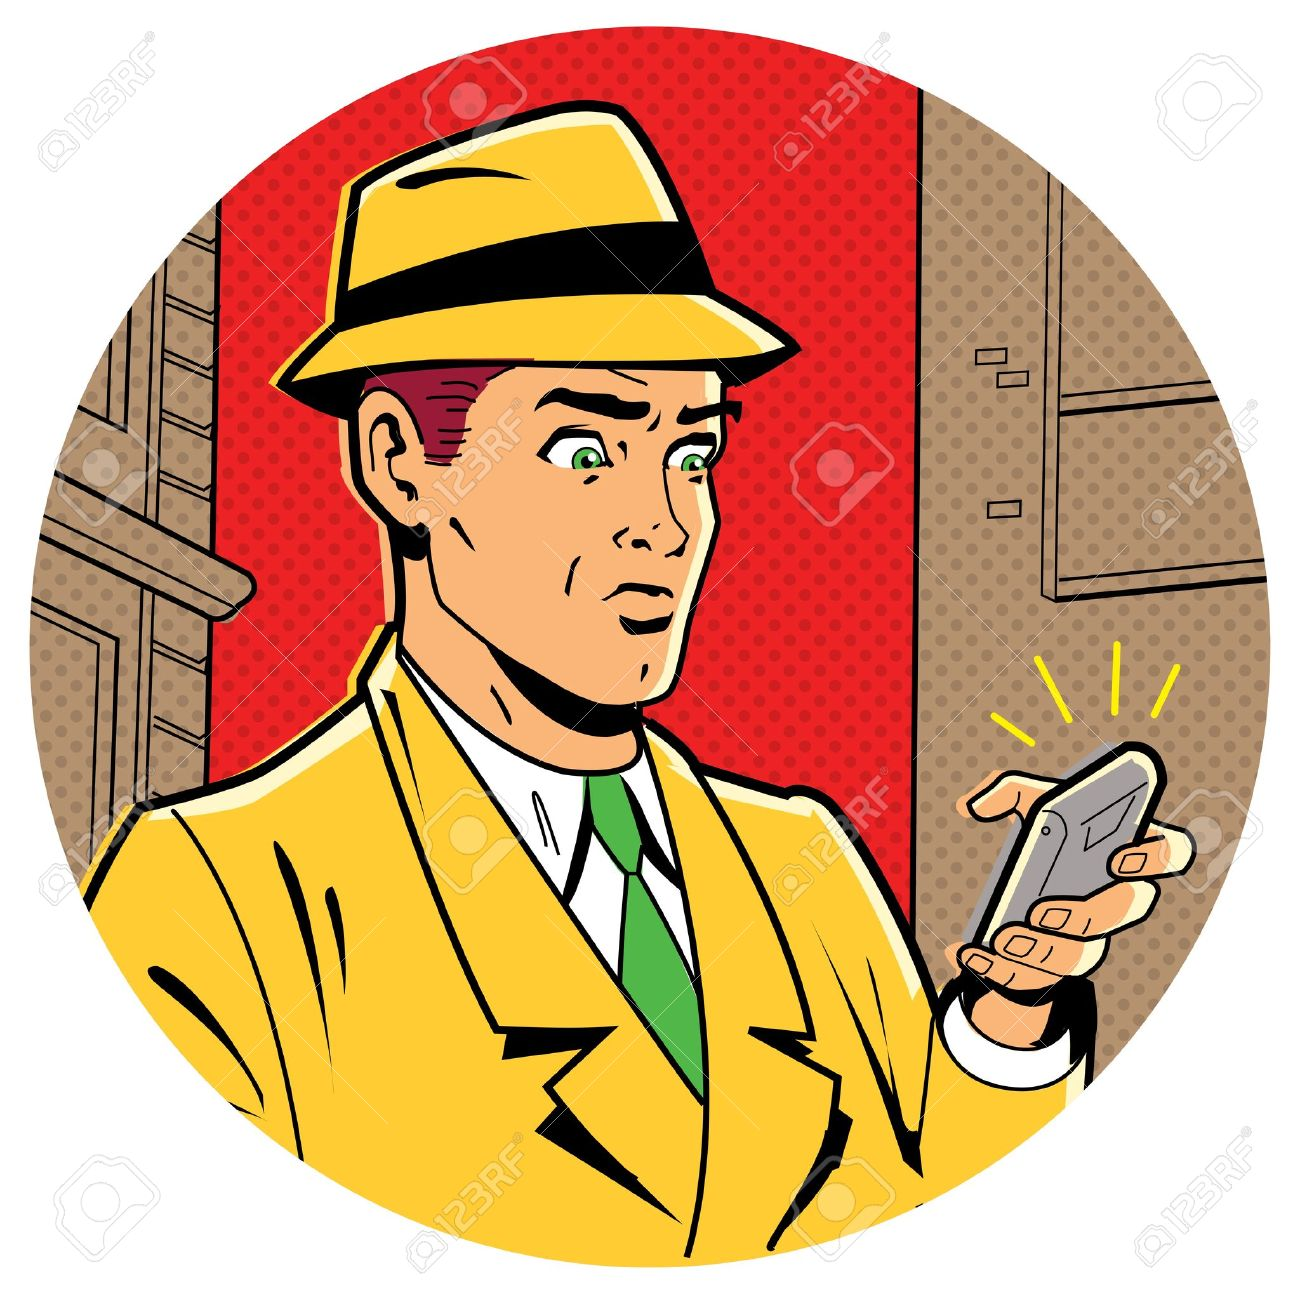 20686020 ironic satirical illustration of a retro classic comics man with a fedora and a modern smartphone